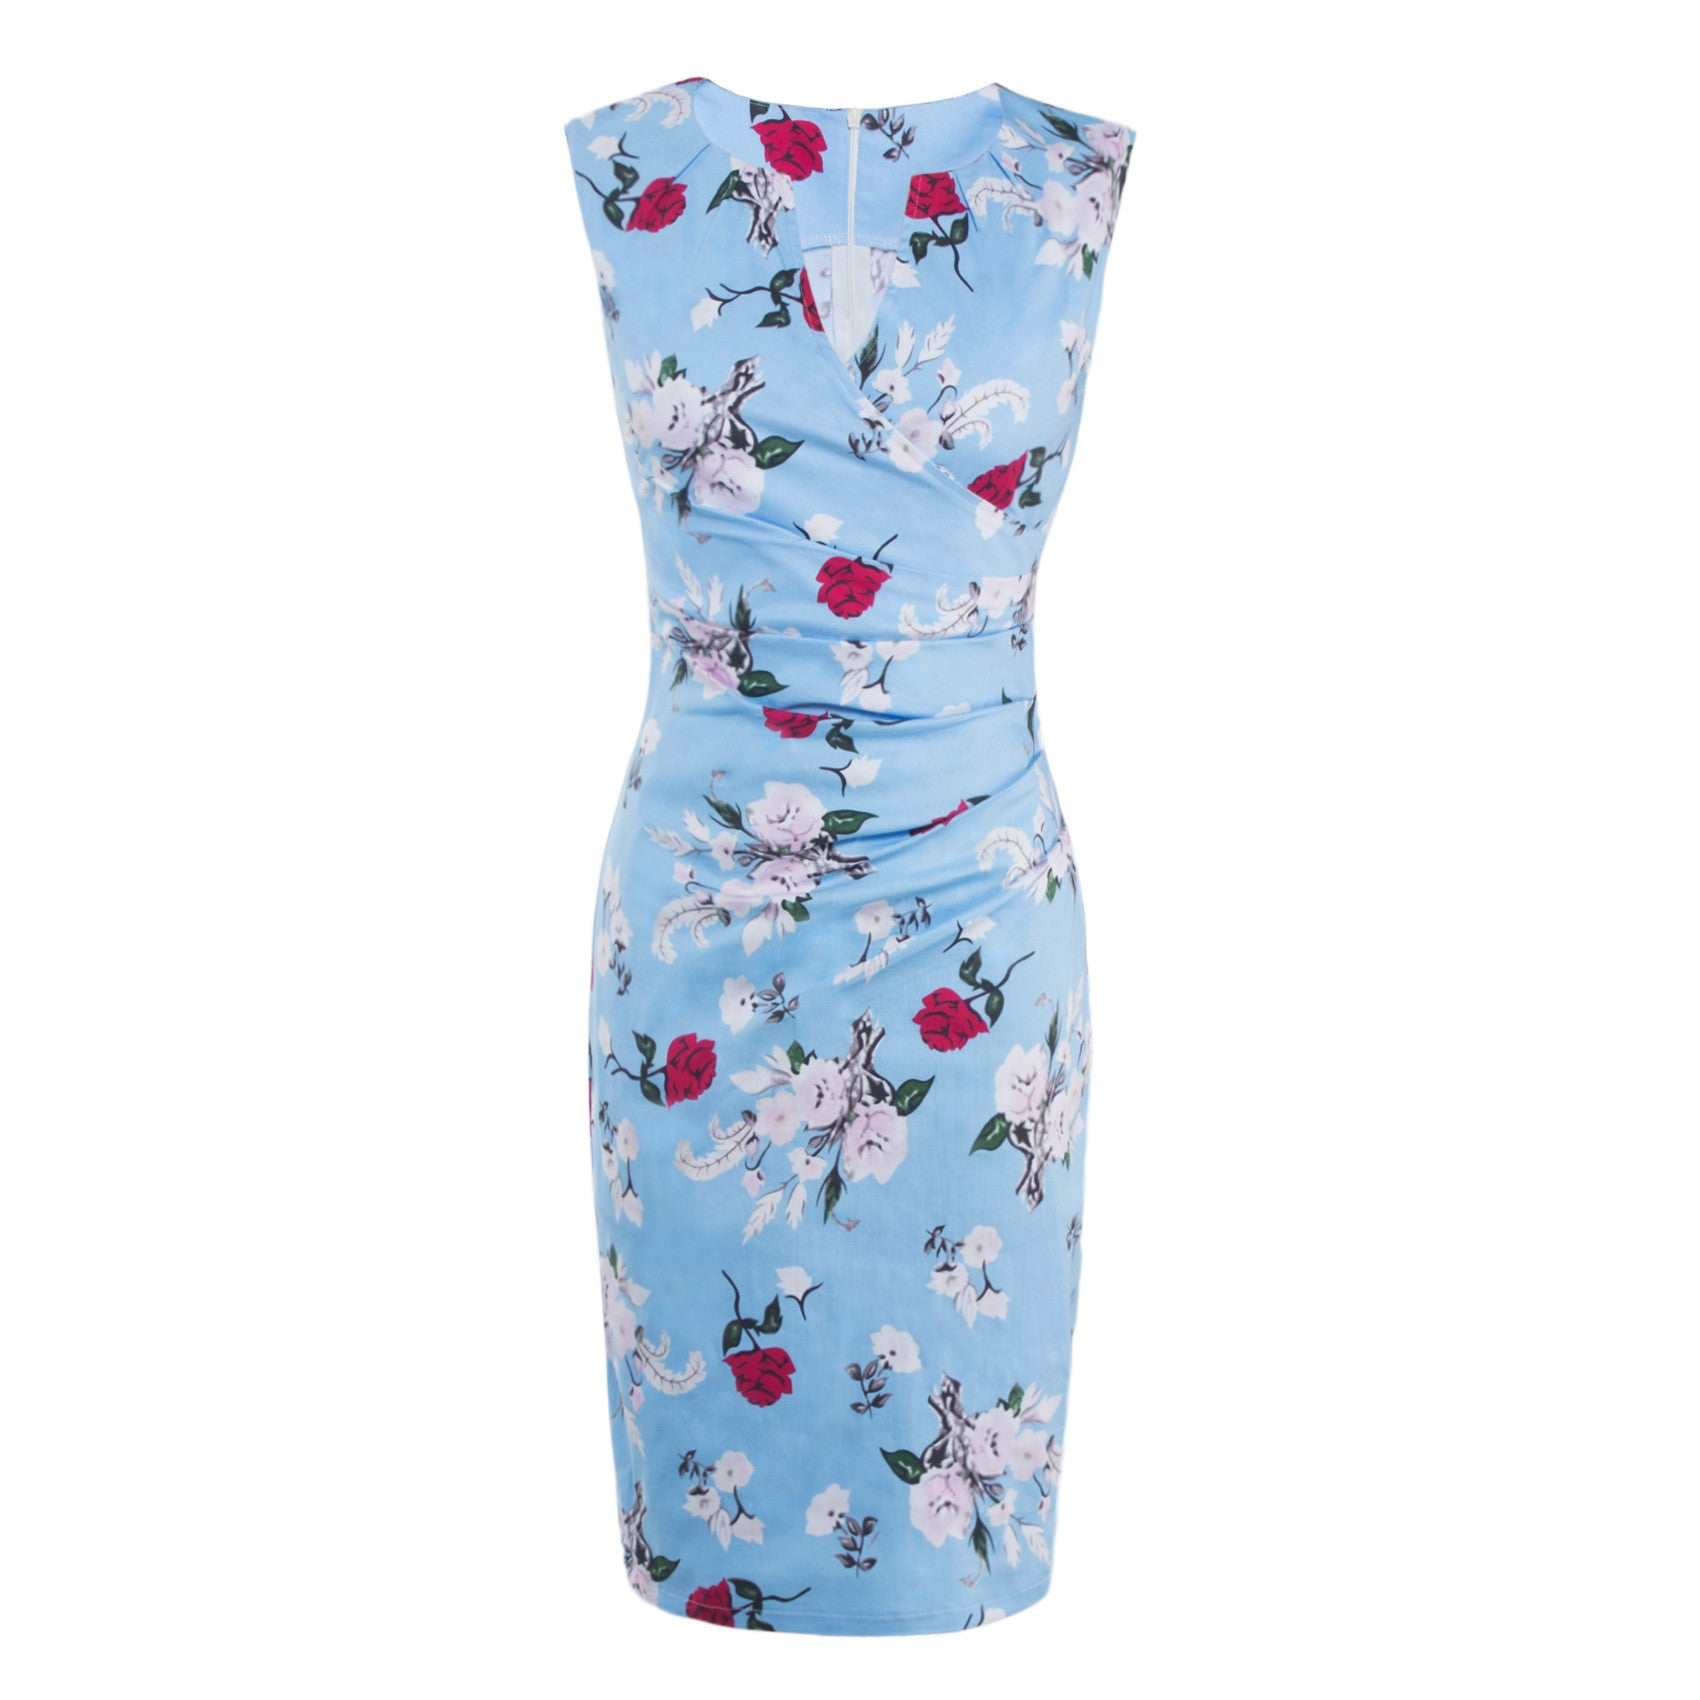 Chicloth Cherish Forever Floral Pencil Dress - 2XL